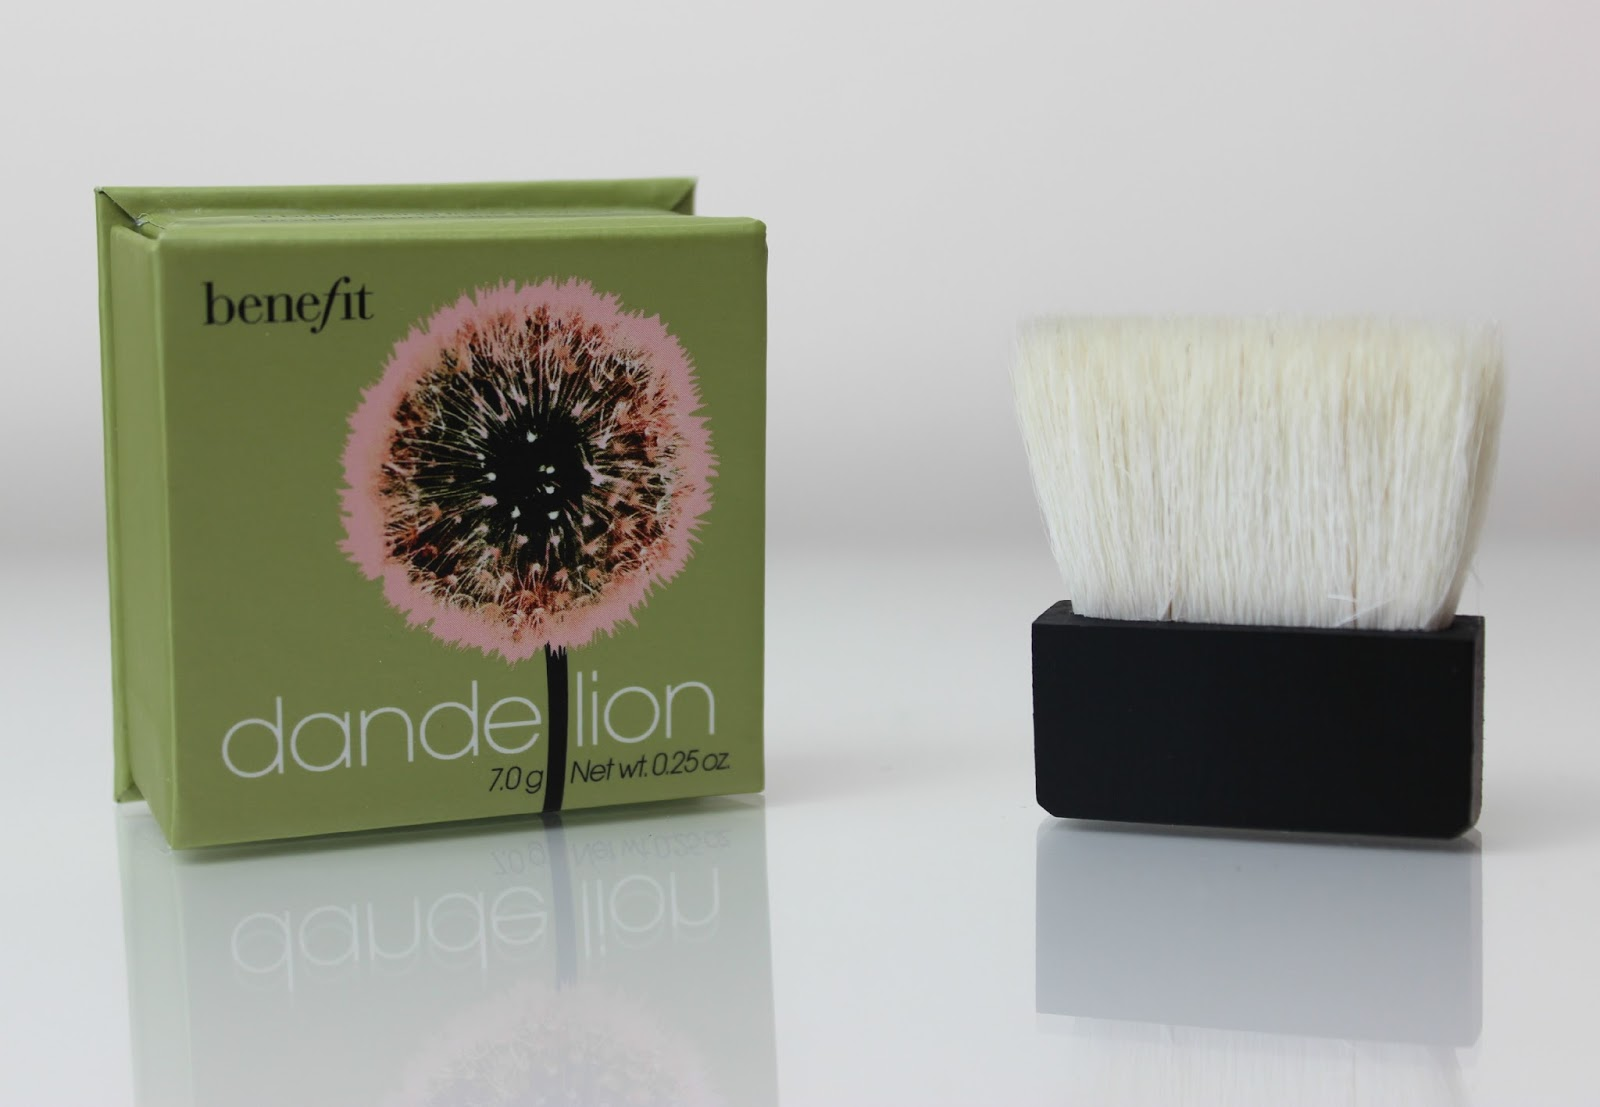 A picture of Benefit Dandelion Box Powder Brightening Face Powder